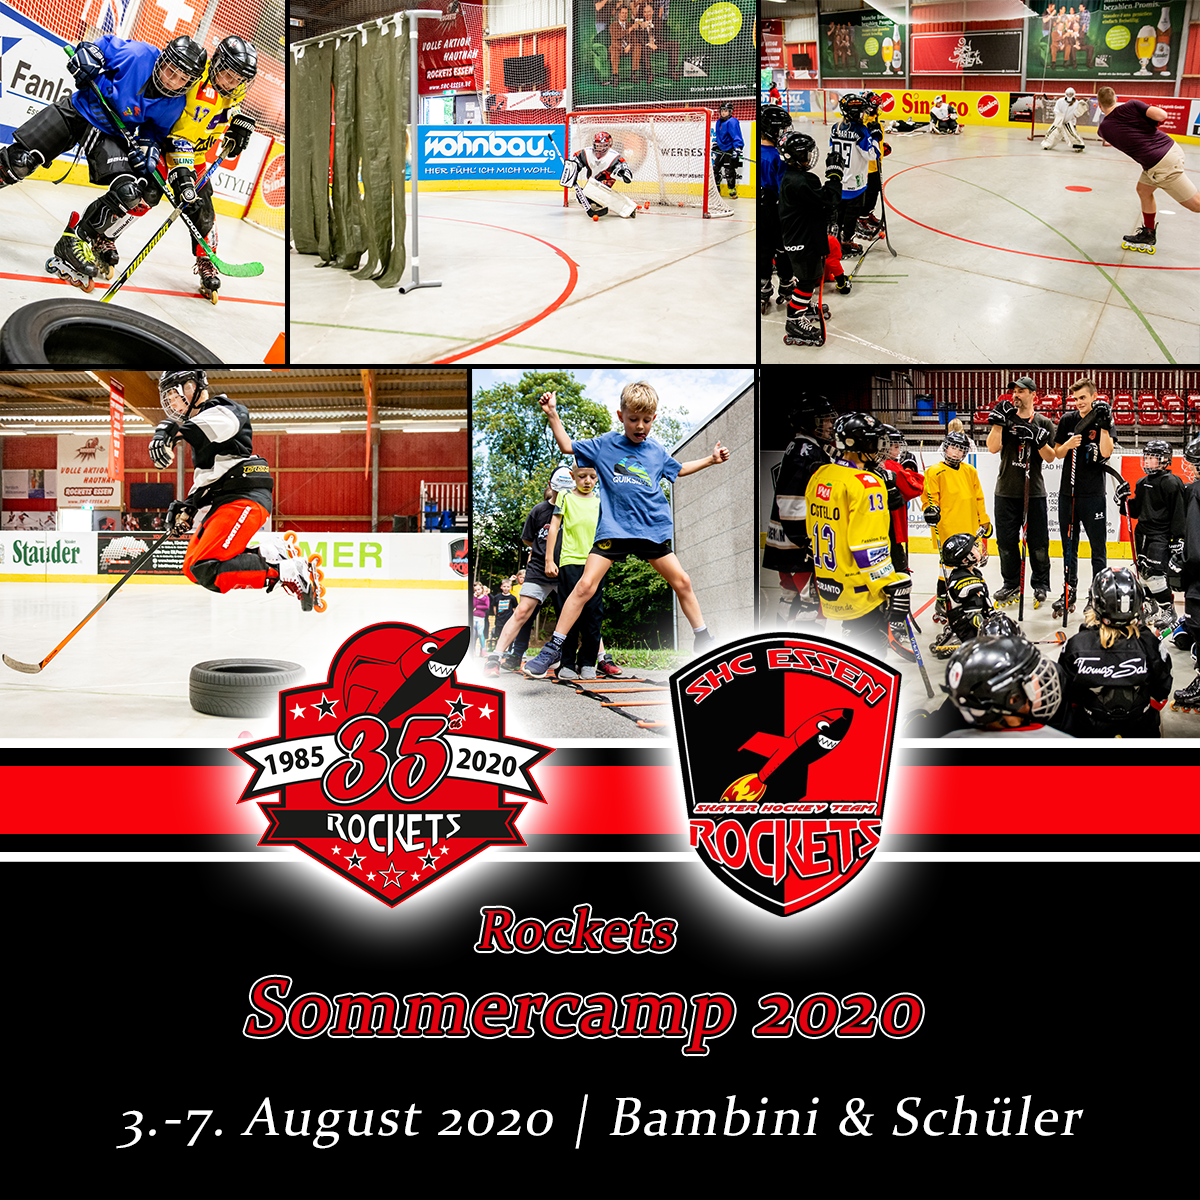 Rockets-Sommercamp 2020